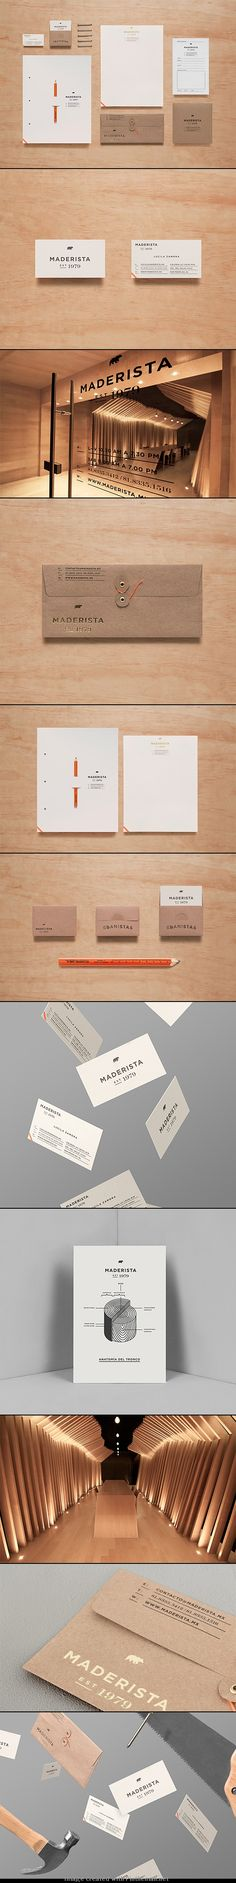 "Note: The outstanding photography of the branding items outshines the actual design of the brand/CI. ""Madersita Identity"""